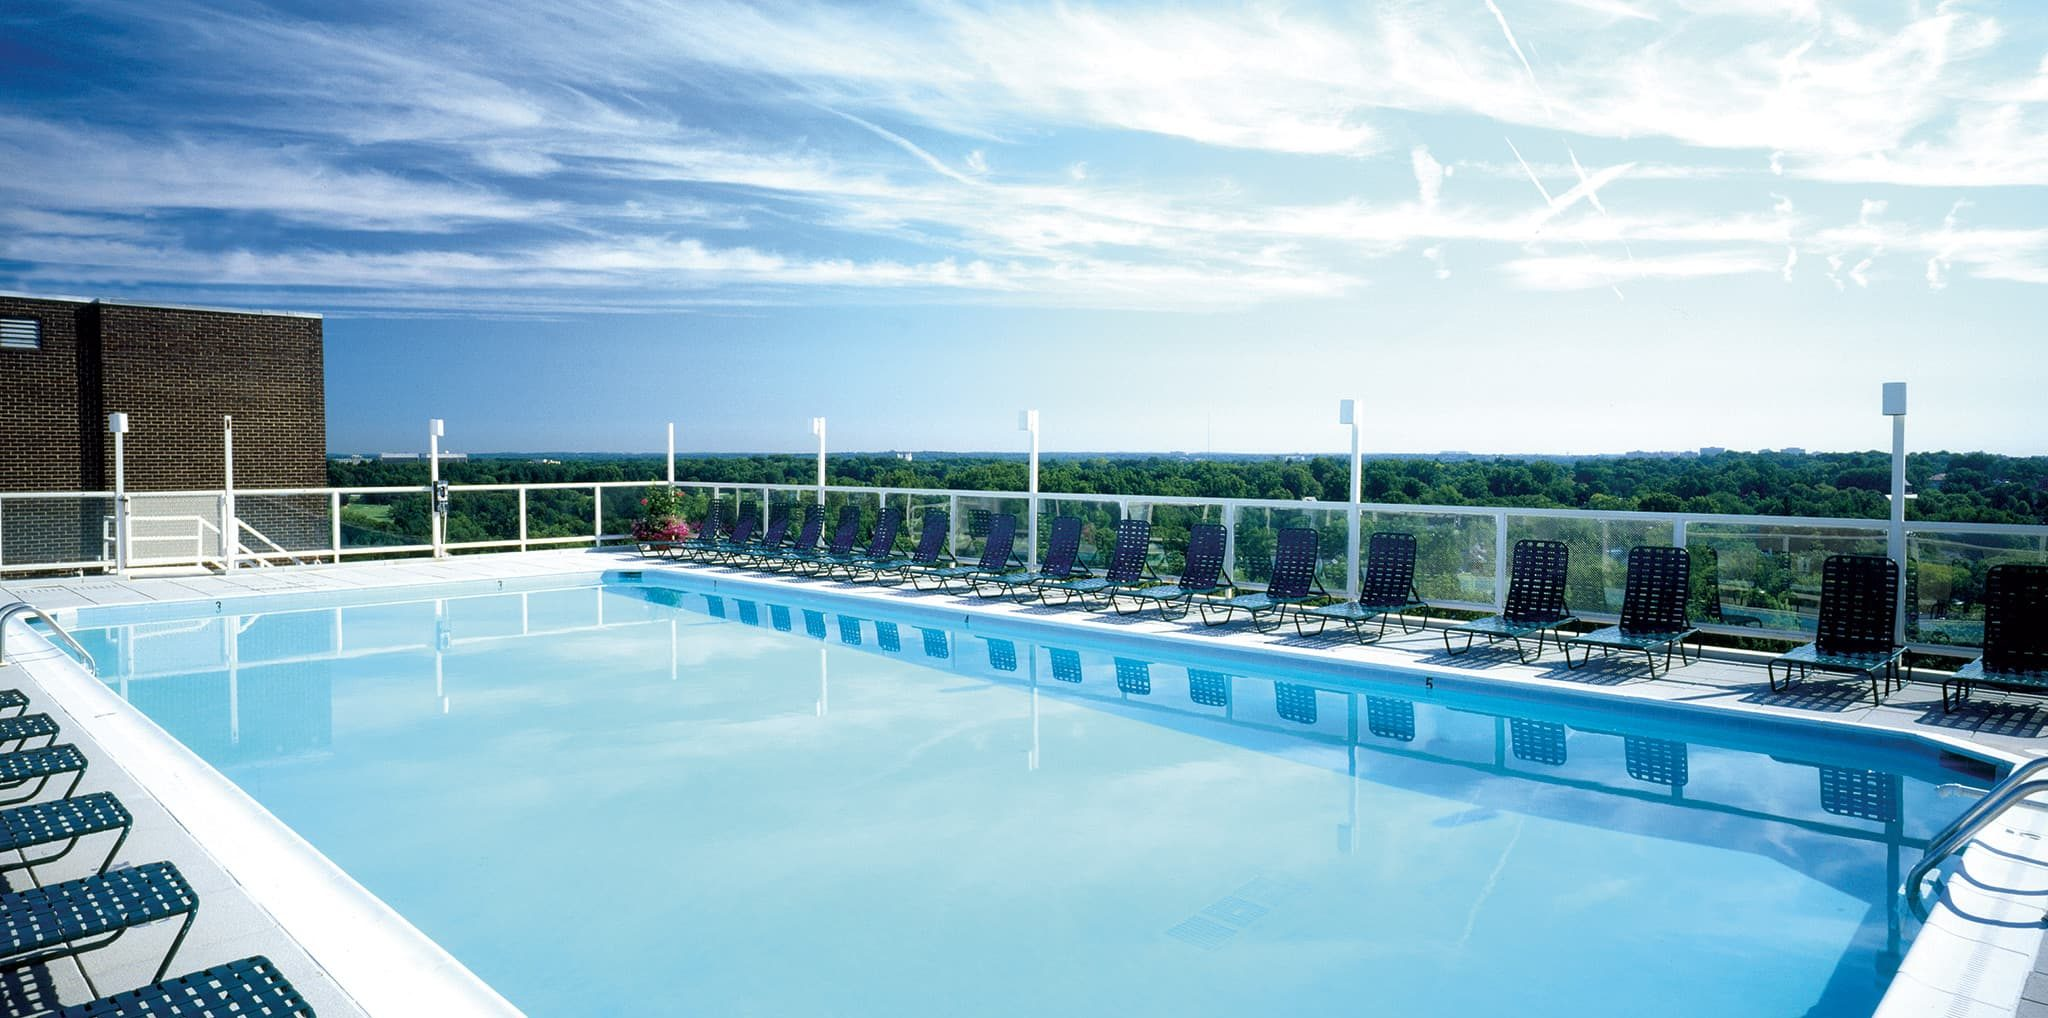 Rooftop pool at The Highlands of Chevy Chase